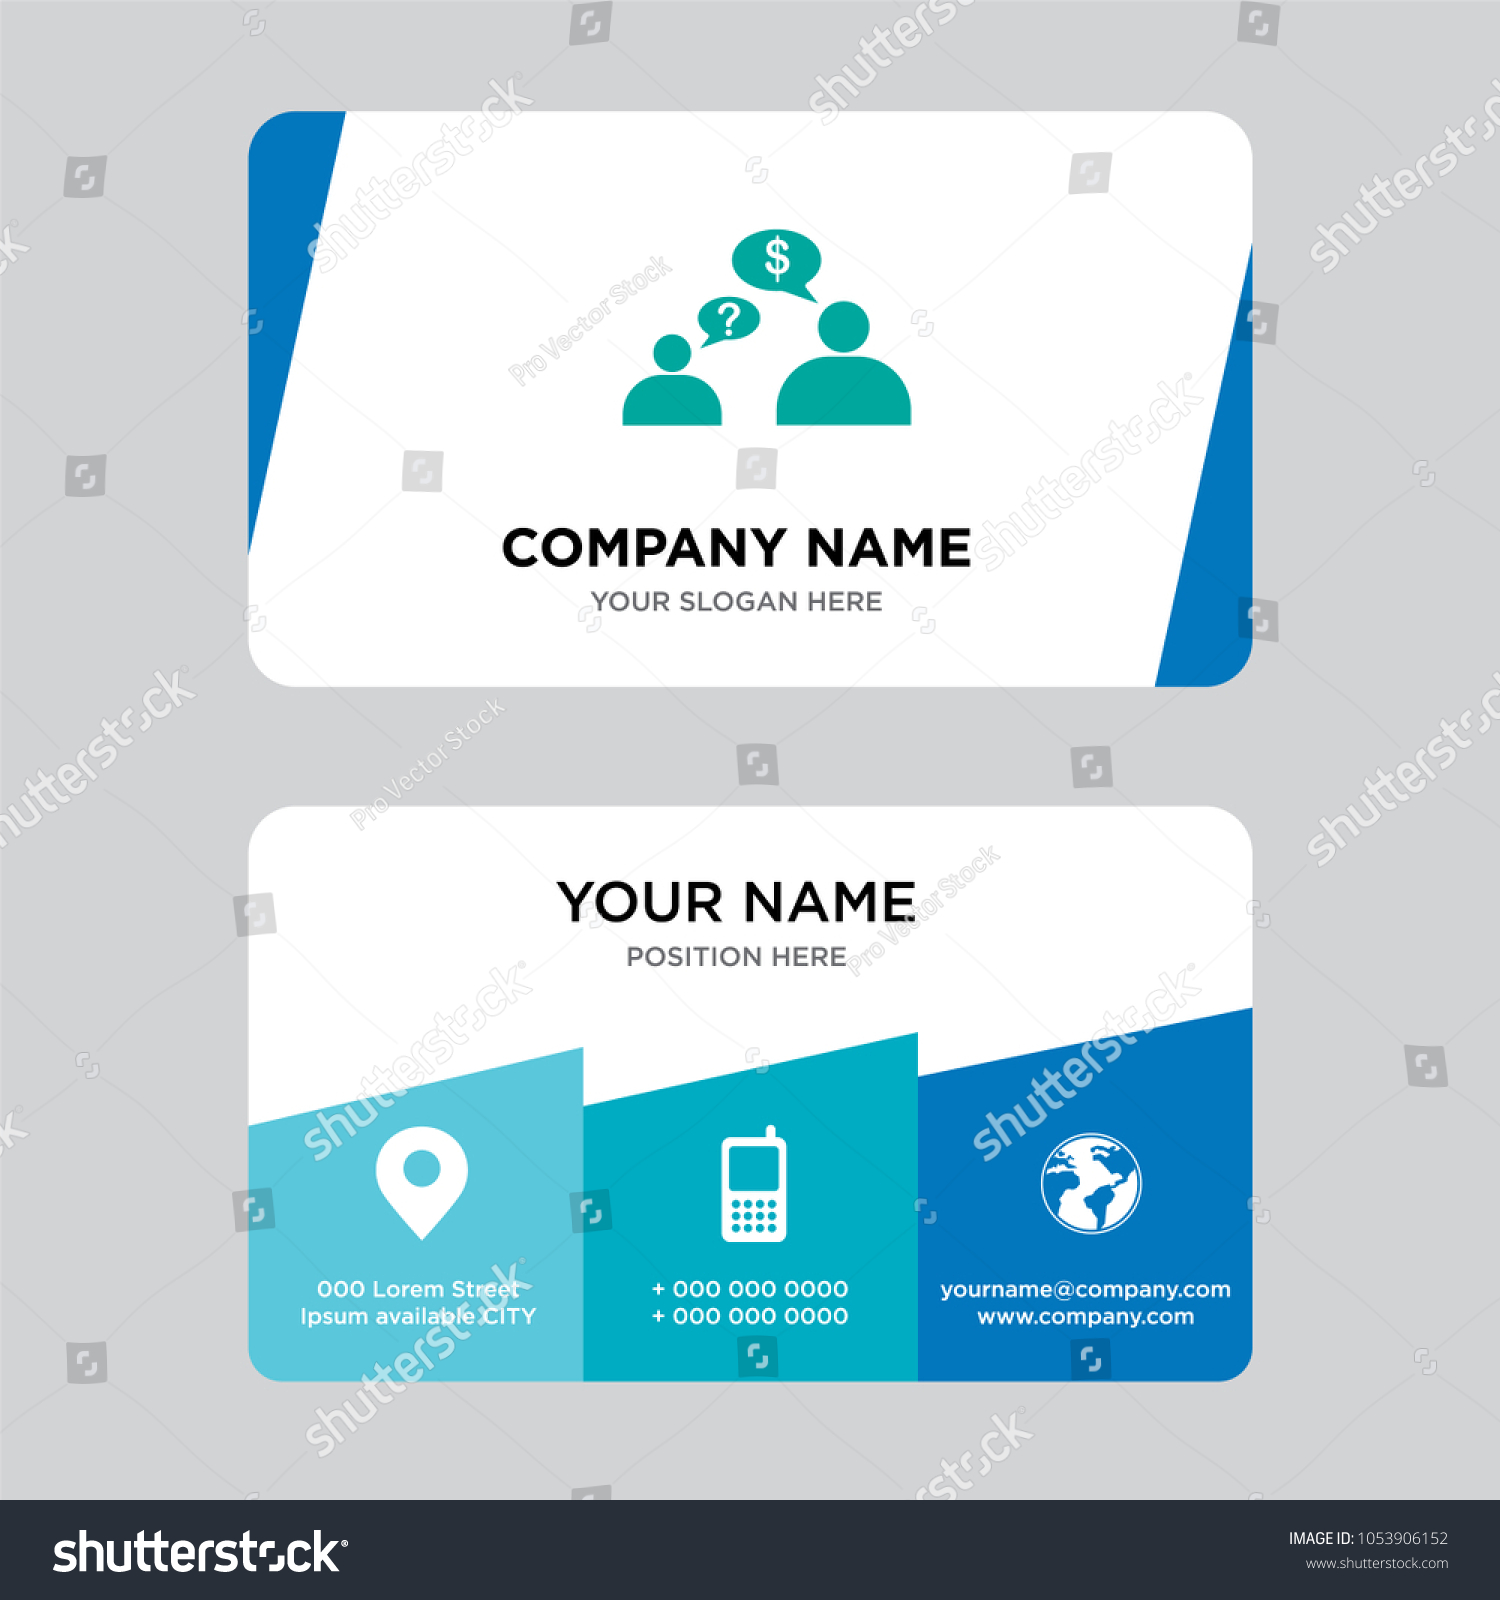 Request Quote Business Card Design Template Stock Vector (2018 ...